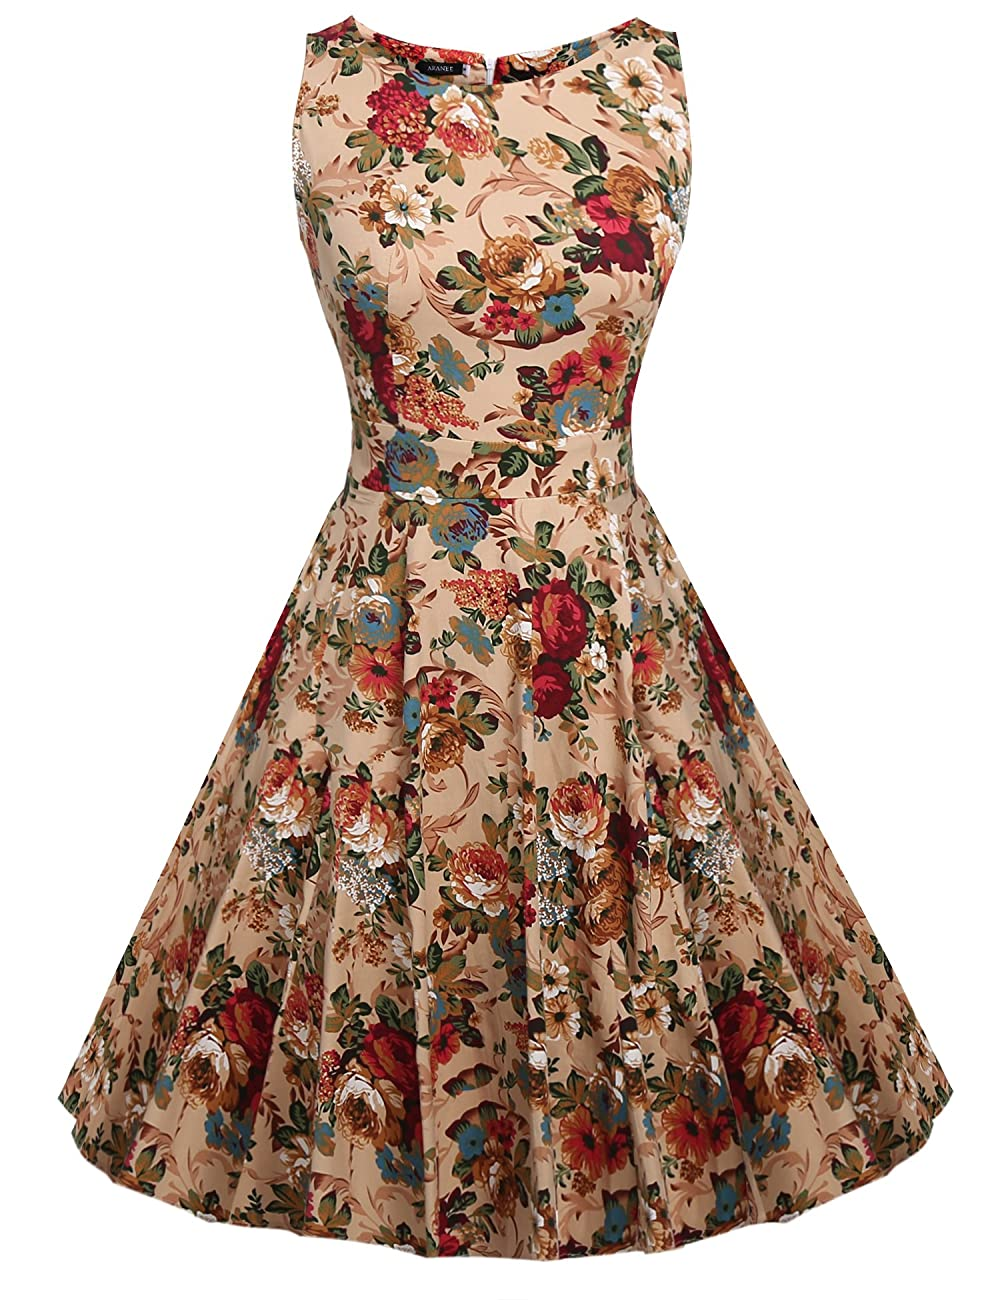 ARANEE Vintage Classy Floral Sleeveless Party Picnic Party Cocktail Dress 0